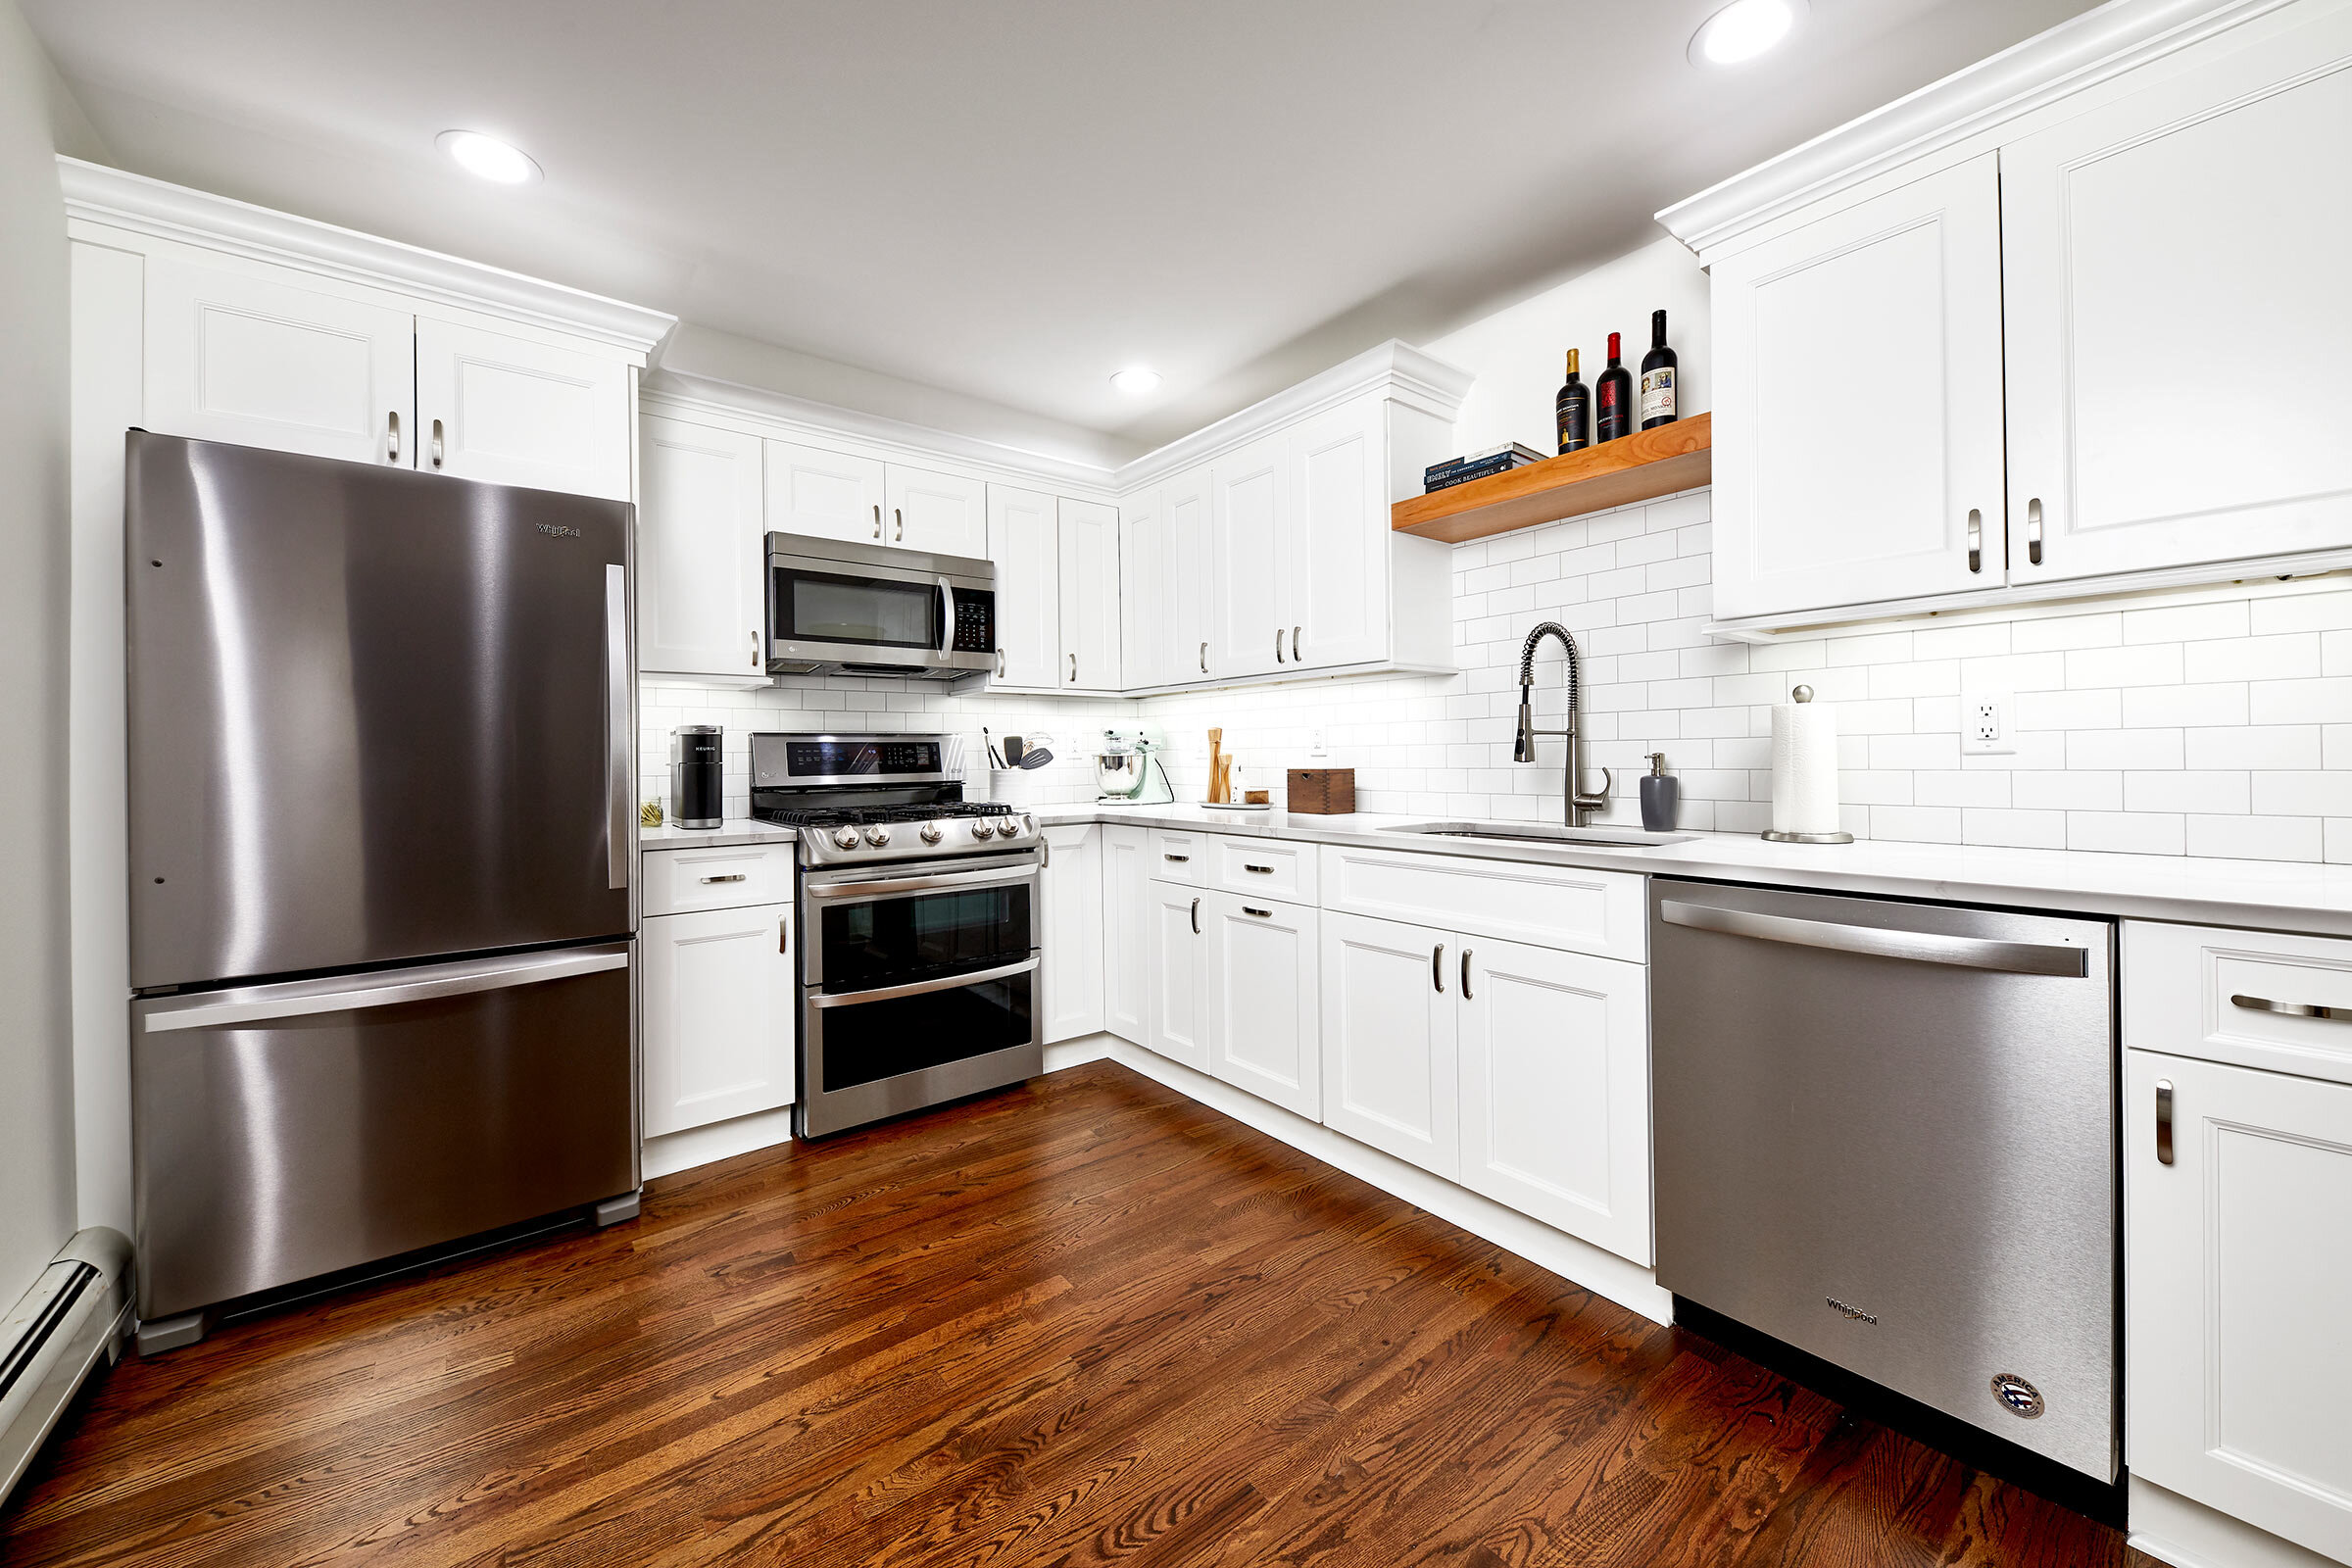 thompson-fine-home-renovations-kitchen-subway-tile-wood-1.jpg